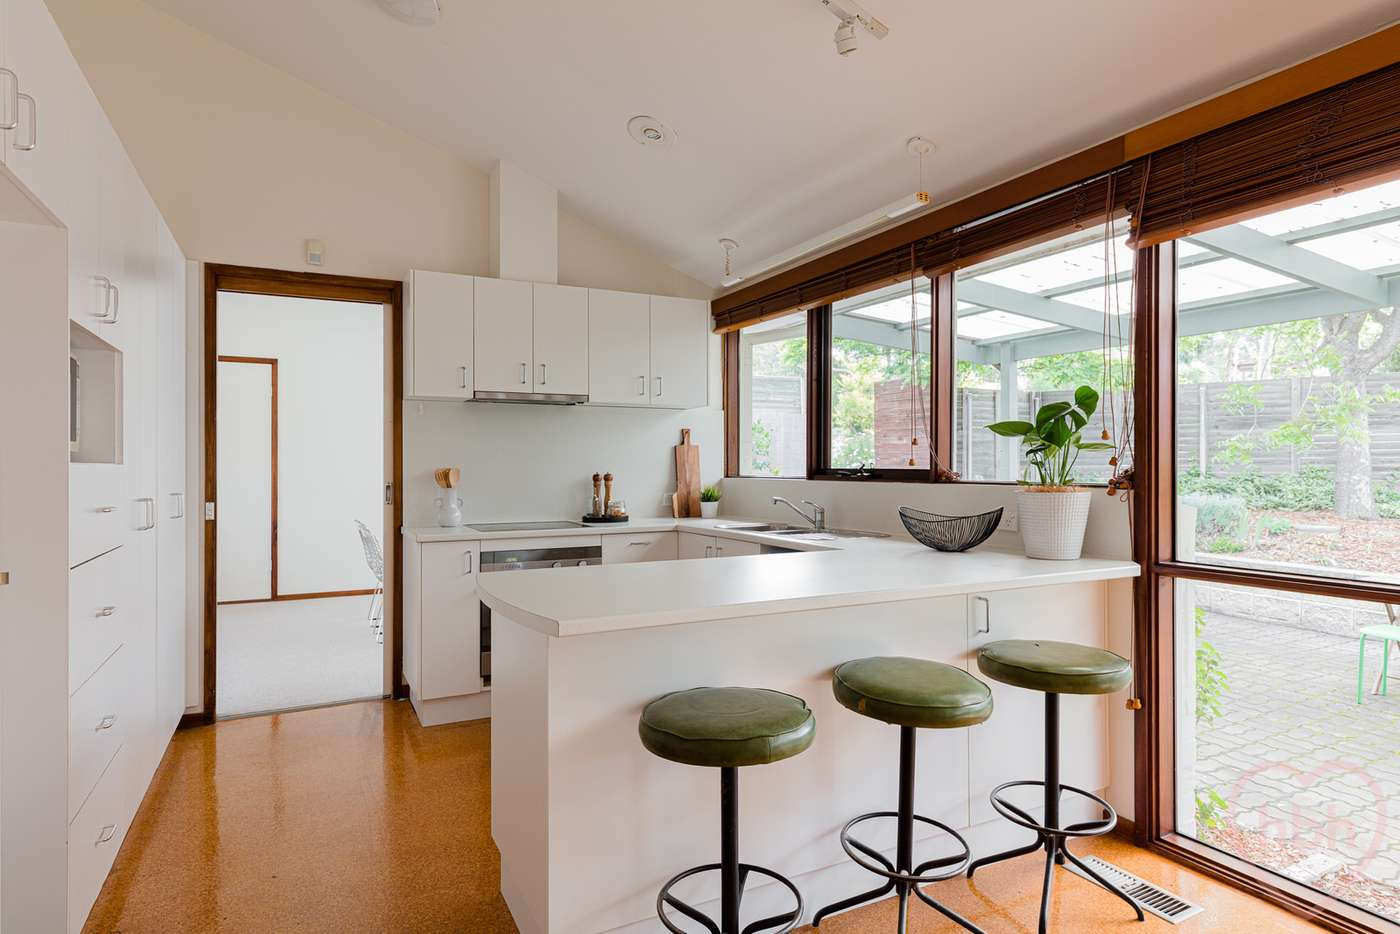 Sixth view of Homely house listing, 48 Crozier Circuit, Kambah ACT 2902